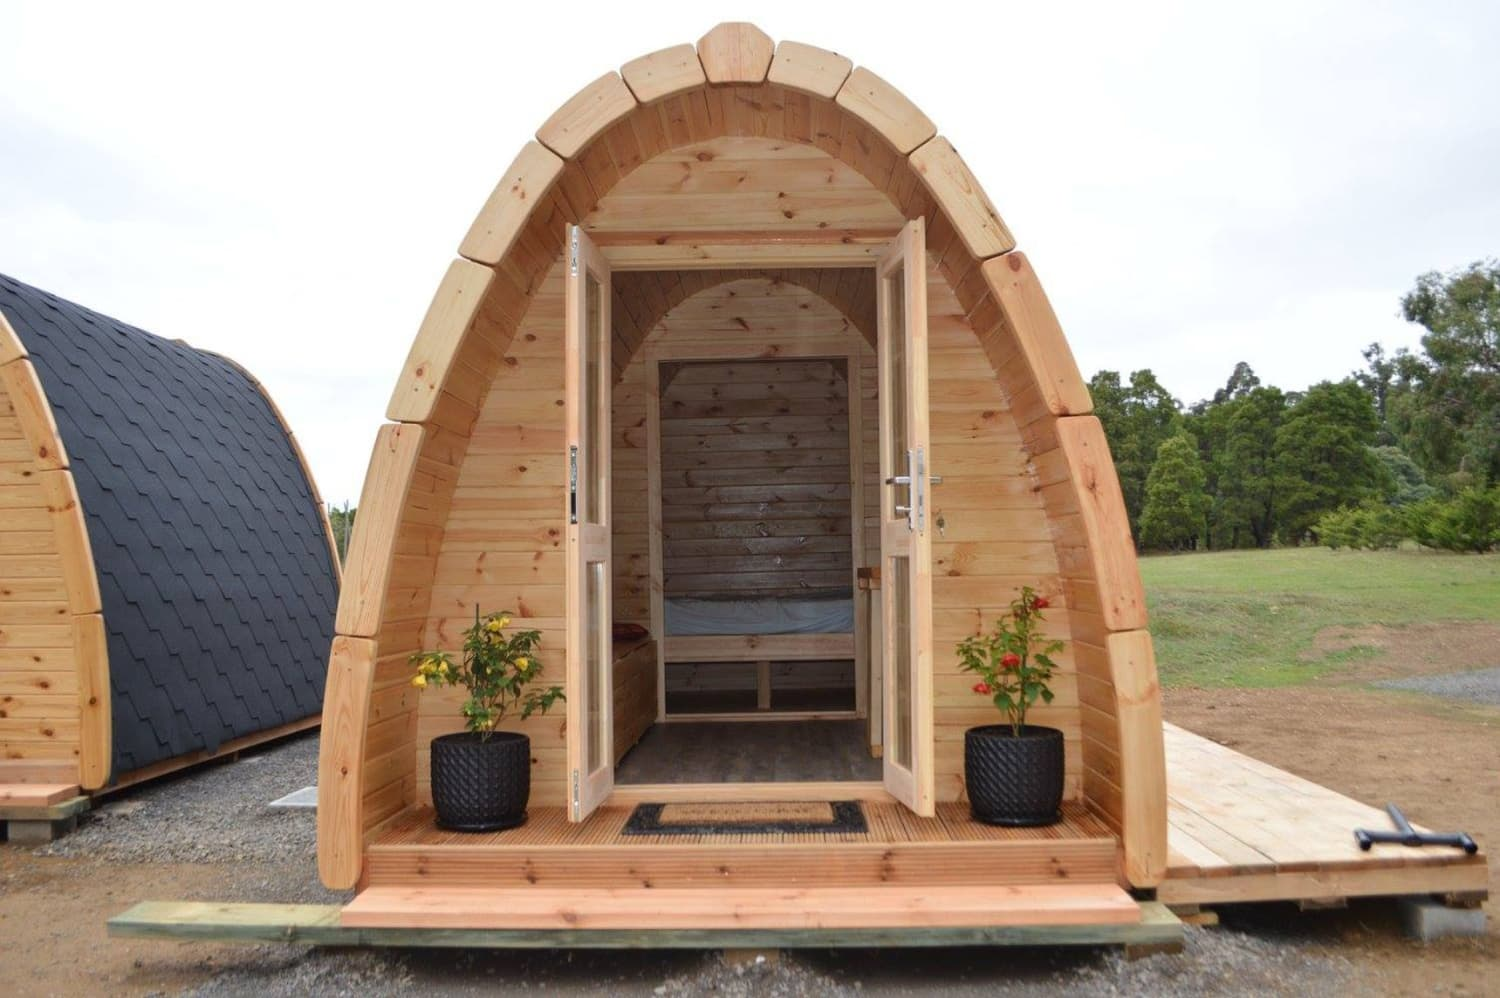 These Tiny Camping Pods Could Be the Next Glamping Trend